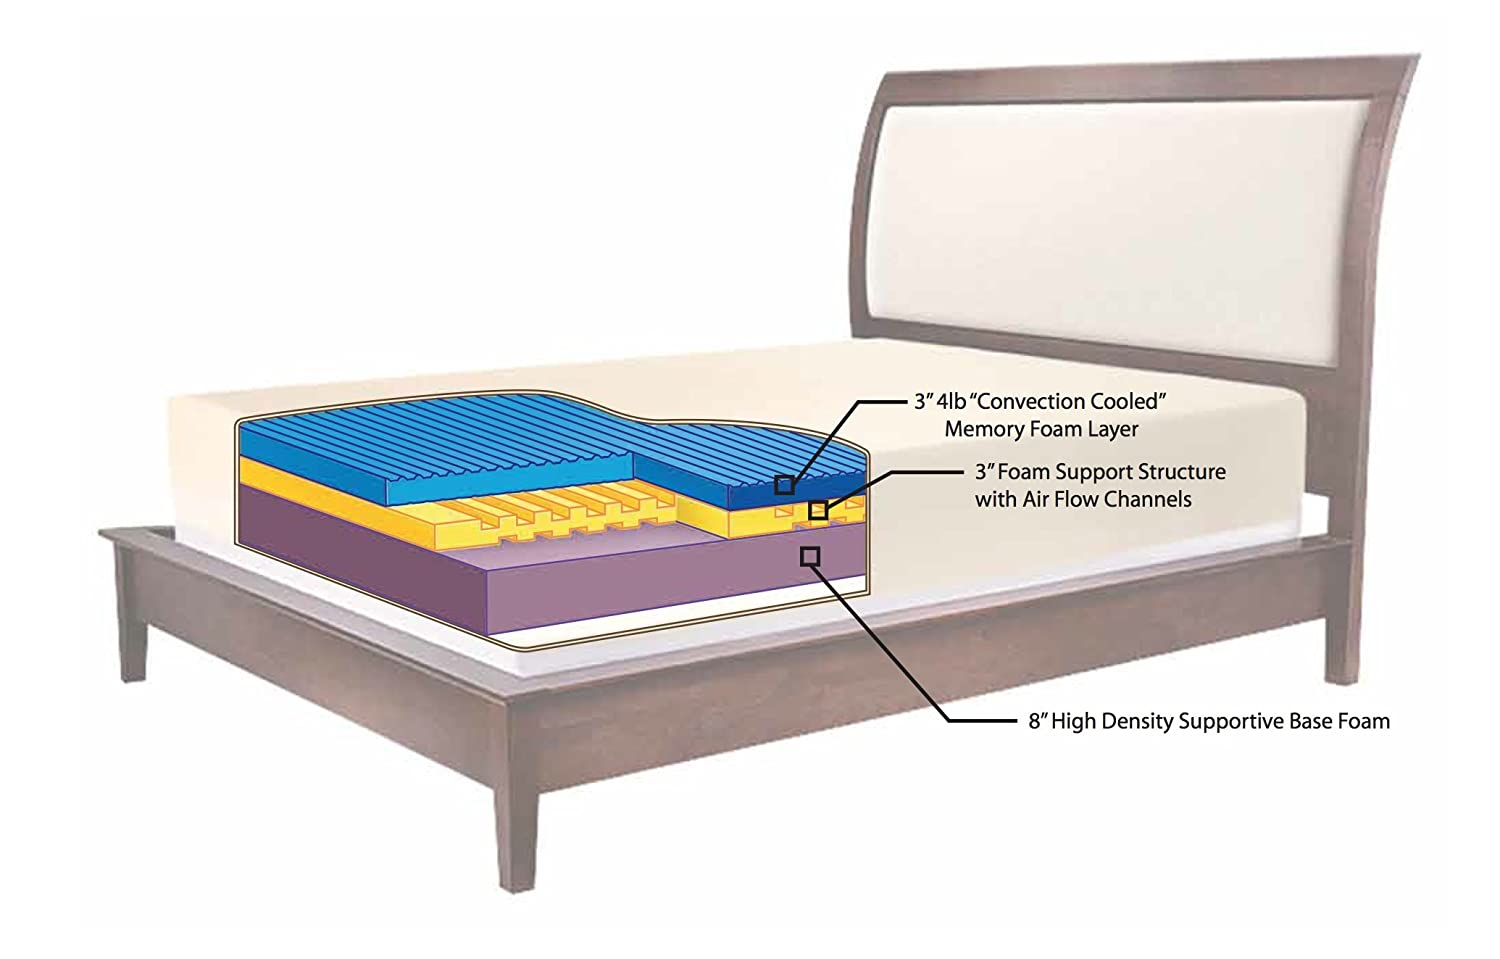 amazoncom sarah peyton convection cooled 14inch firm support memory foam mattress king kitchen u0026 dining